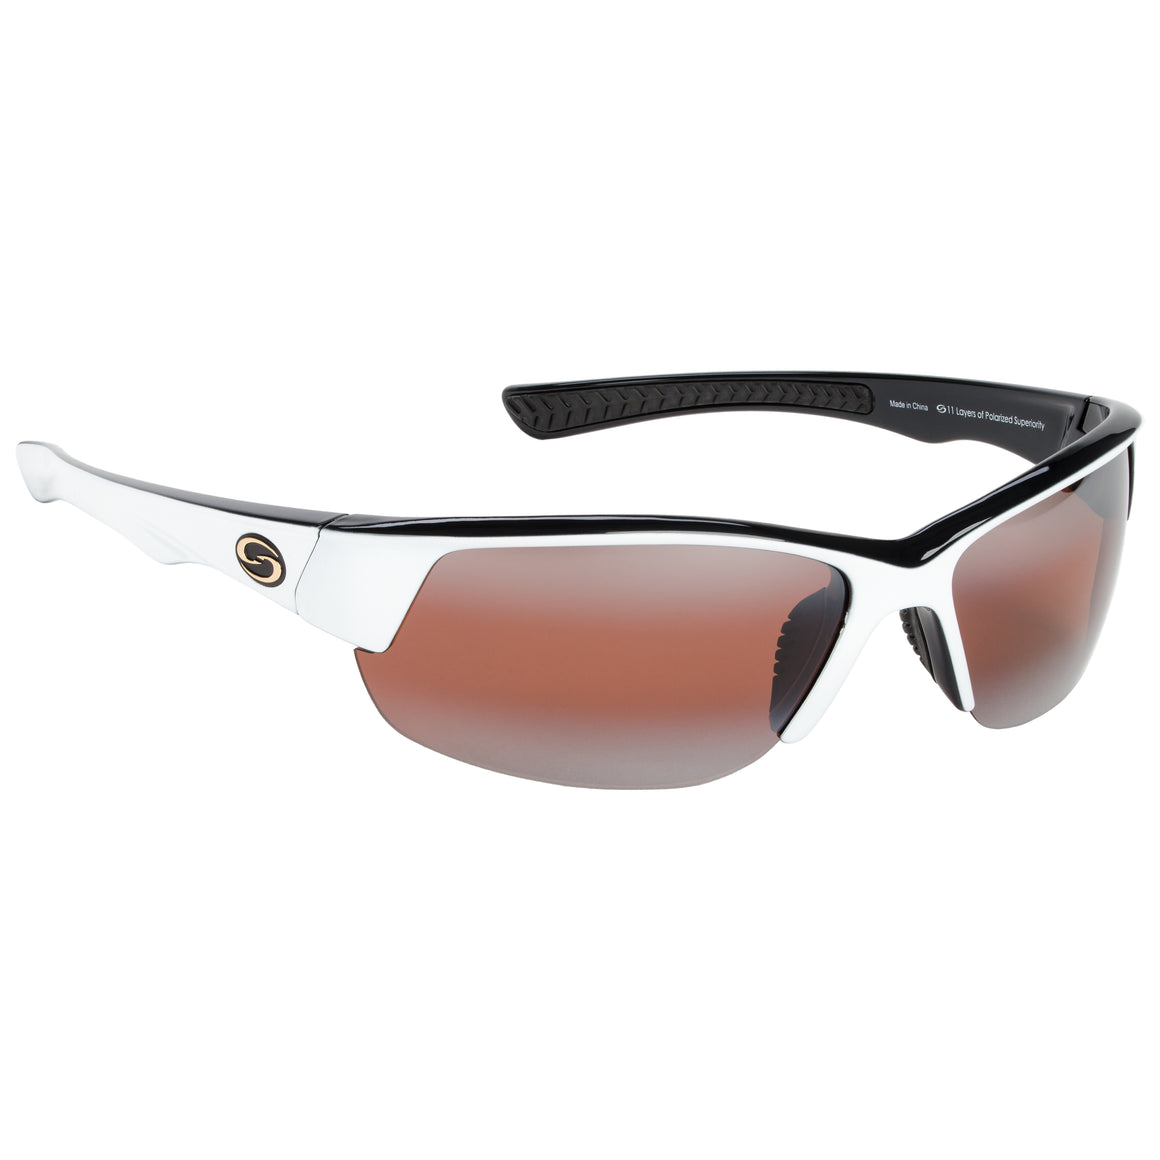 Strike King S11 Optics Gulf Sunglasses - Direct Fishing Sales